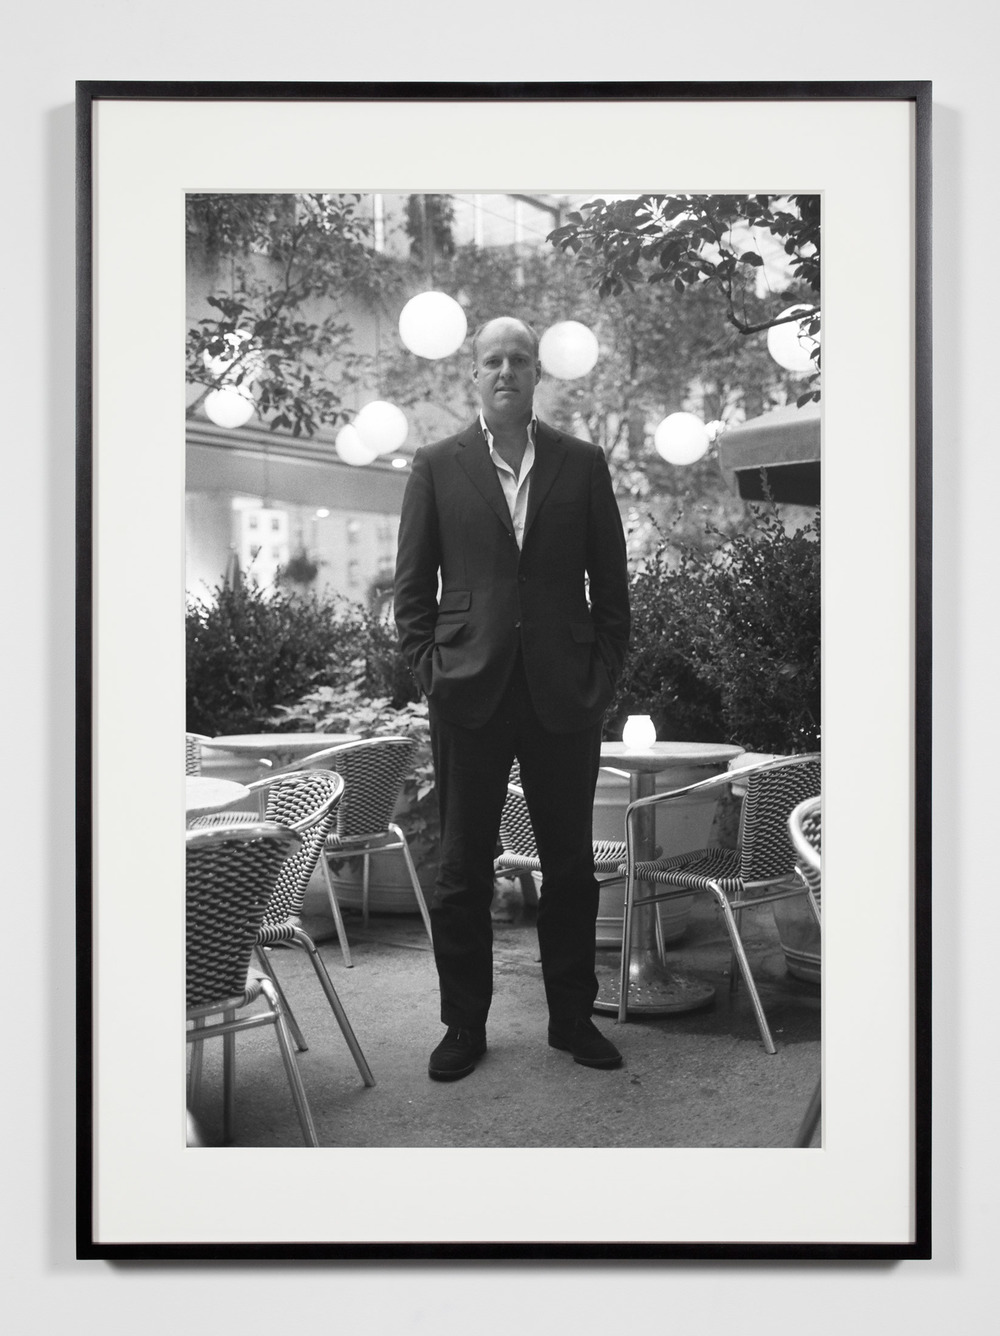 Gallery Owner, New York, New York, September 28, 2008    2011   Epson Ultrachrome K3 archival ink jet print on Hahnemühle Photo Rag paper  36 3/8 x 26 3/8 inches   Industrial Portraits, 2008–